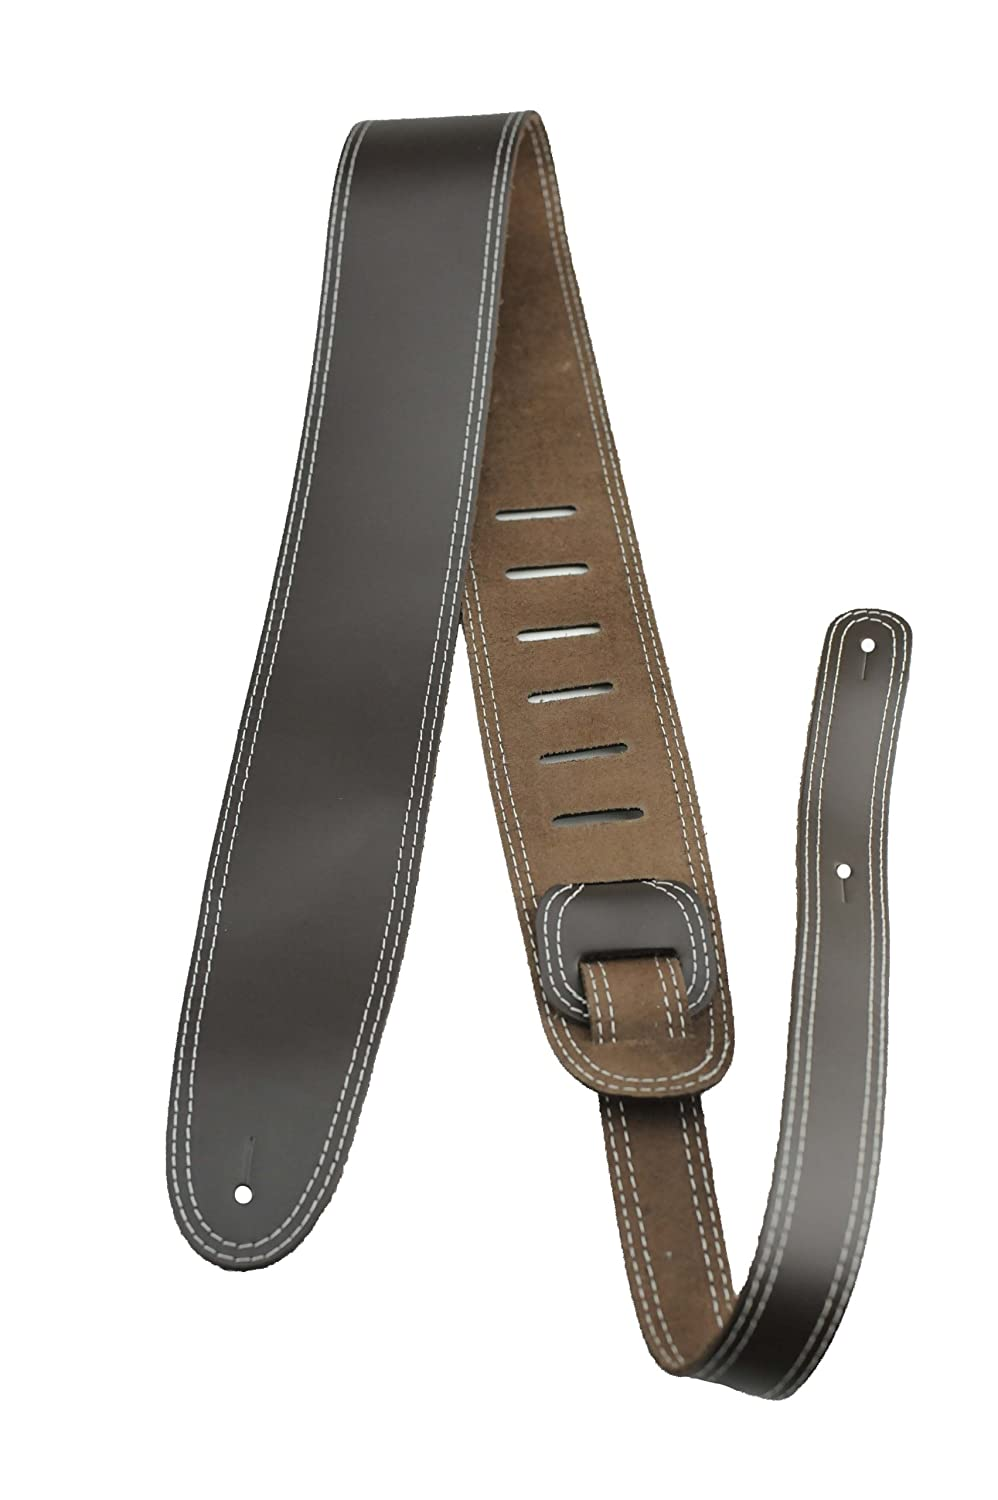 Perri's Leathers P25SMS-1719 2.5-Inch Guitar Strap Perri's Leathers